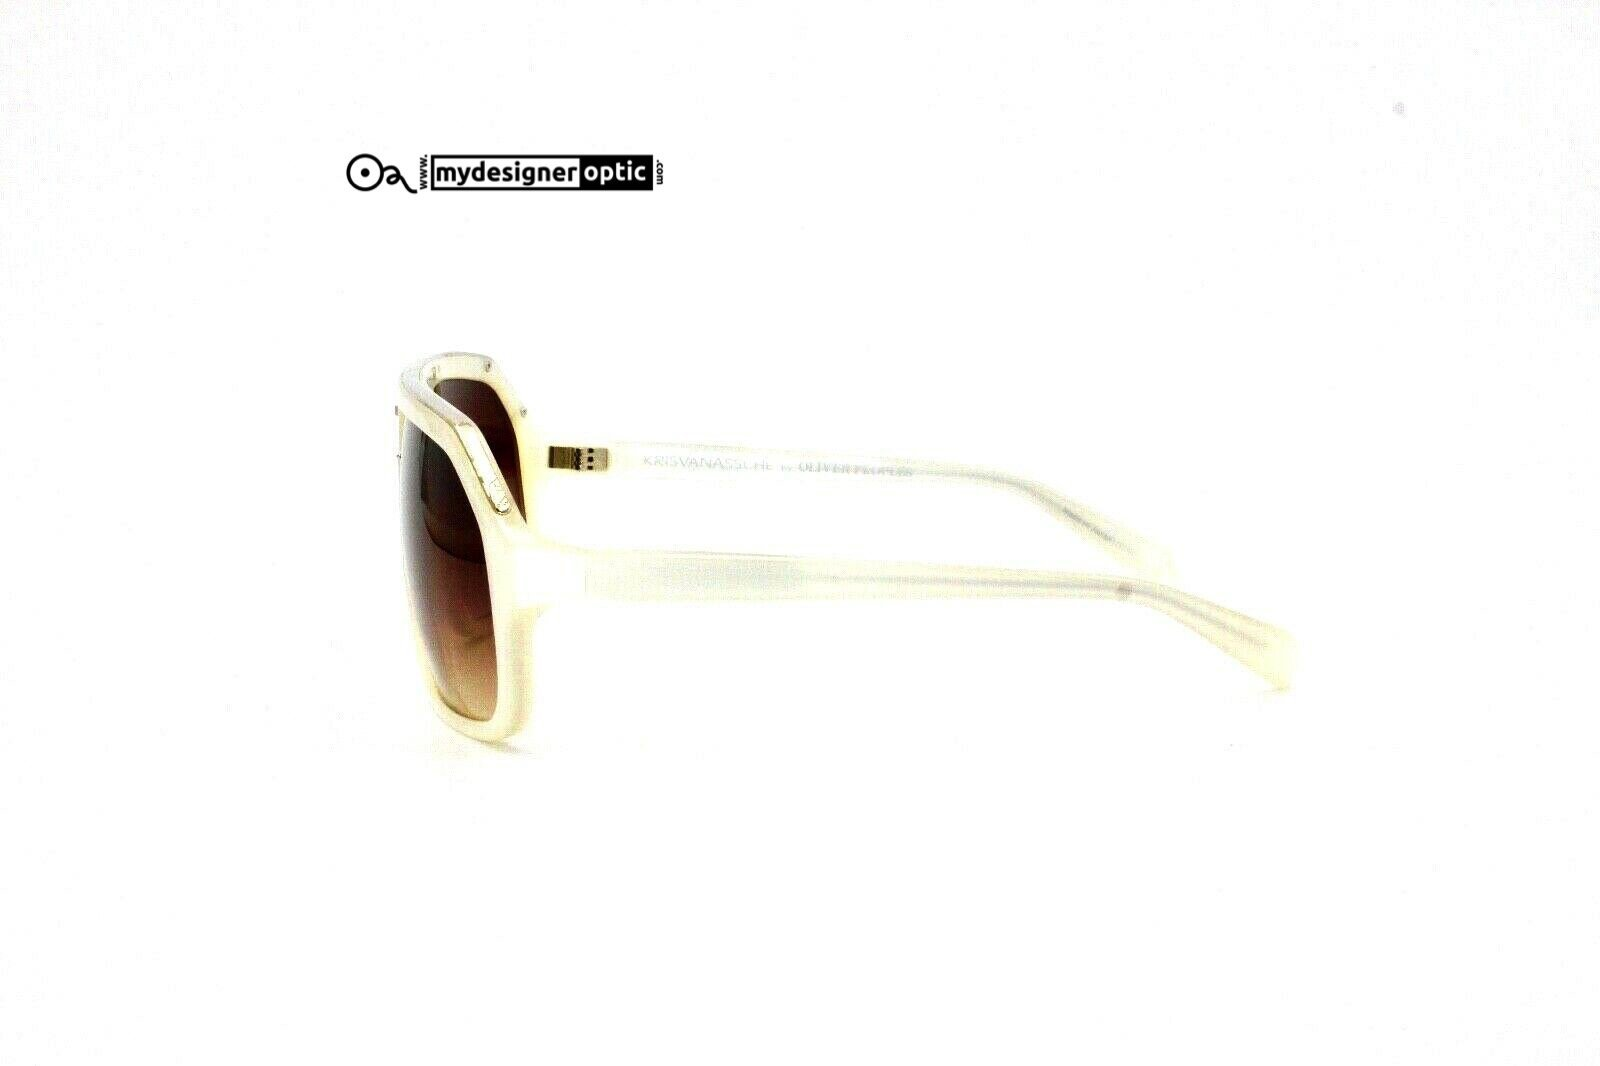 Oliver Peoples Sunglasses KRISVANASSCHE By Oliver Peoples Made in Japan - Mydesigneroptic